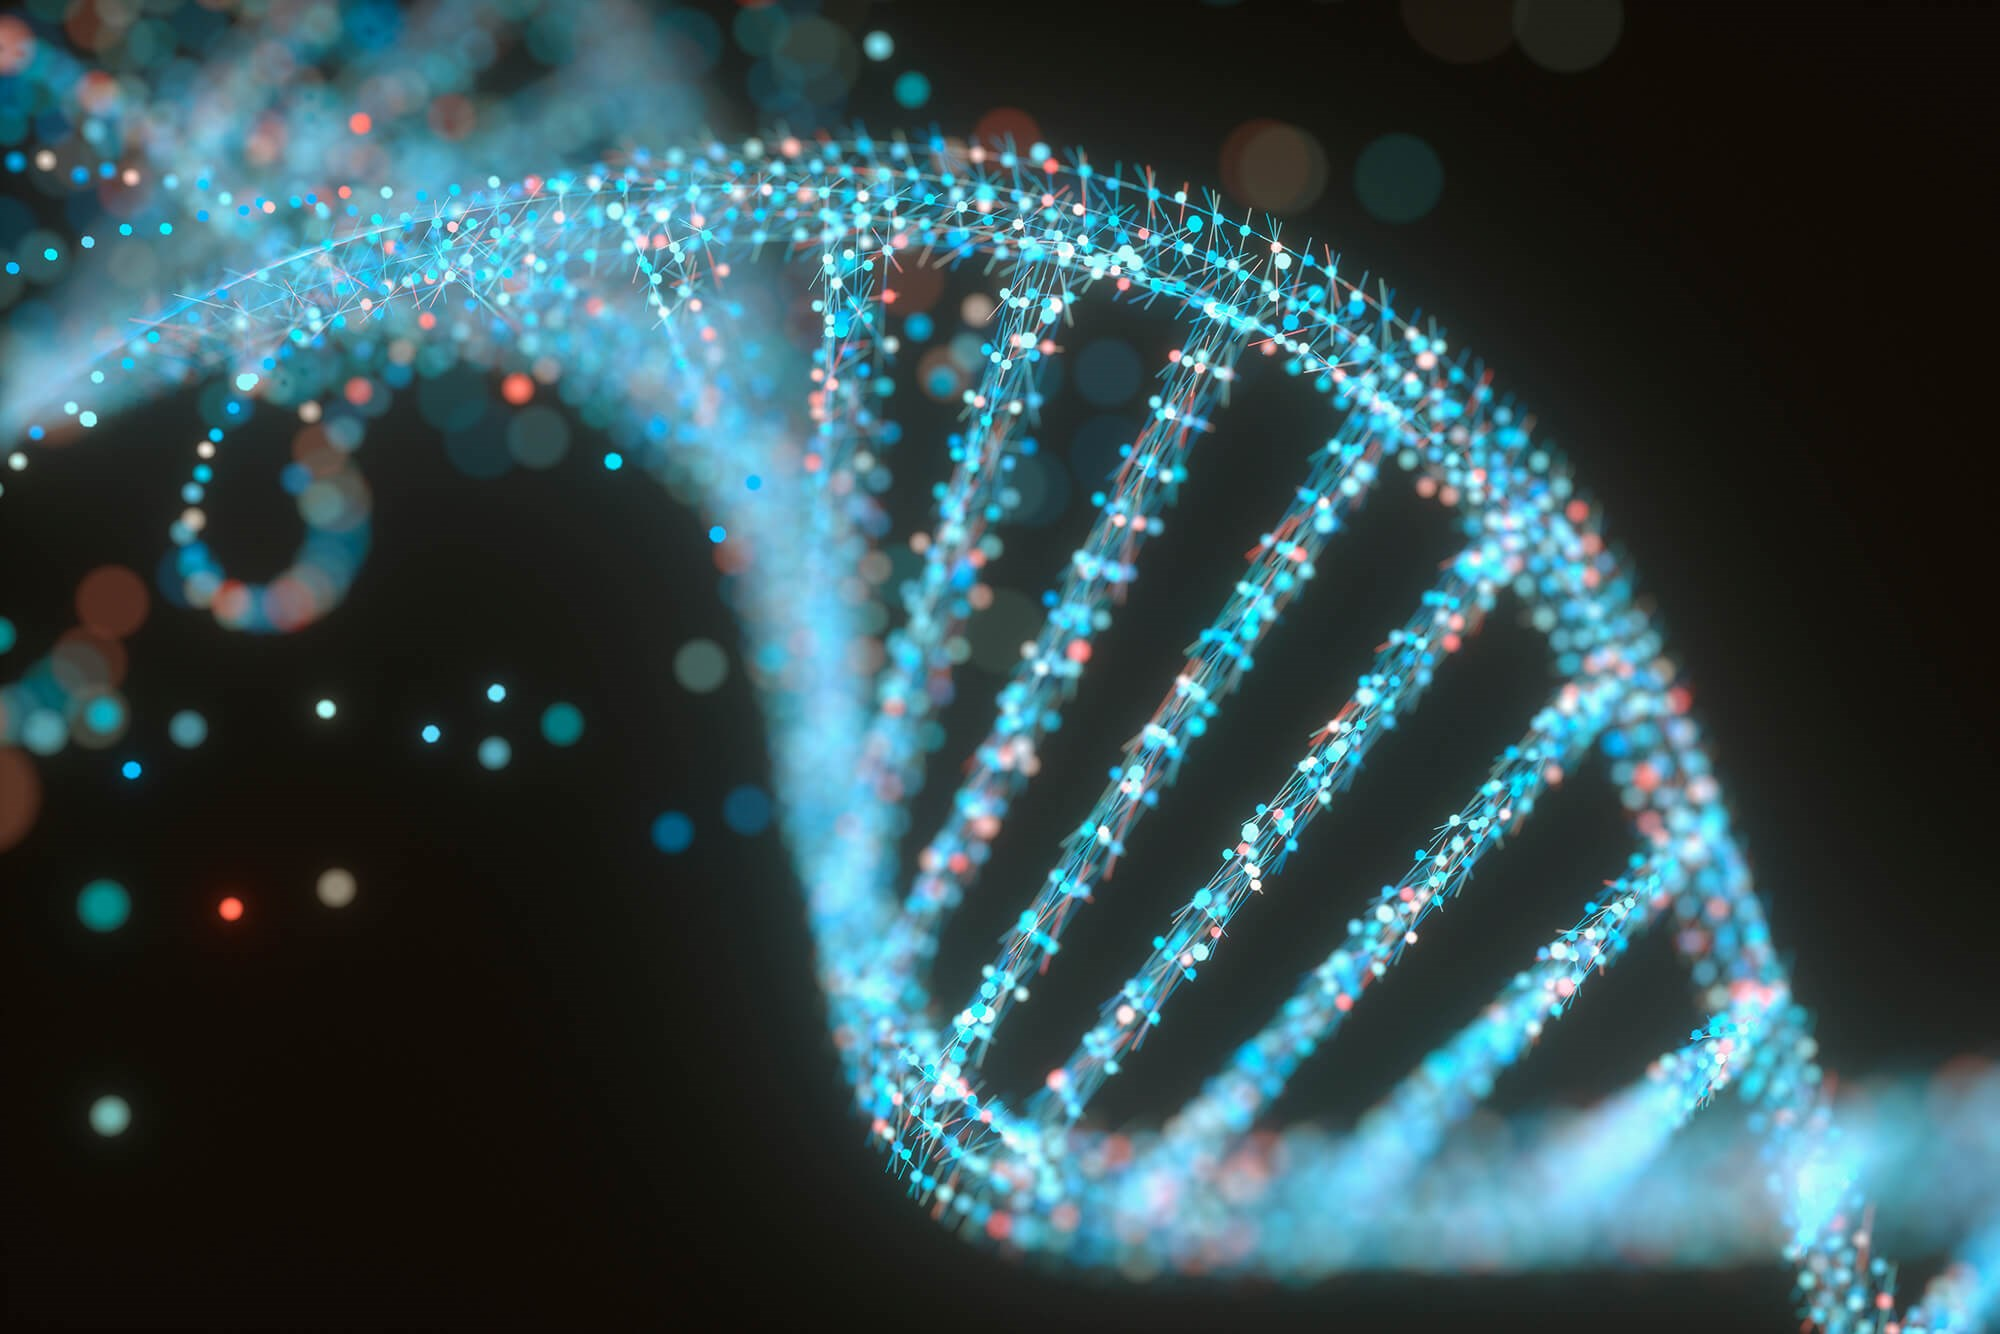 A data analysis revealed a genetic predictor of relapse for pediatric patients with ALL.